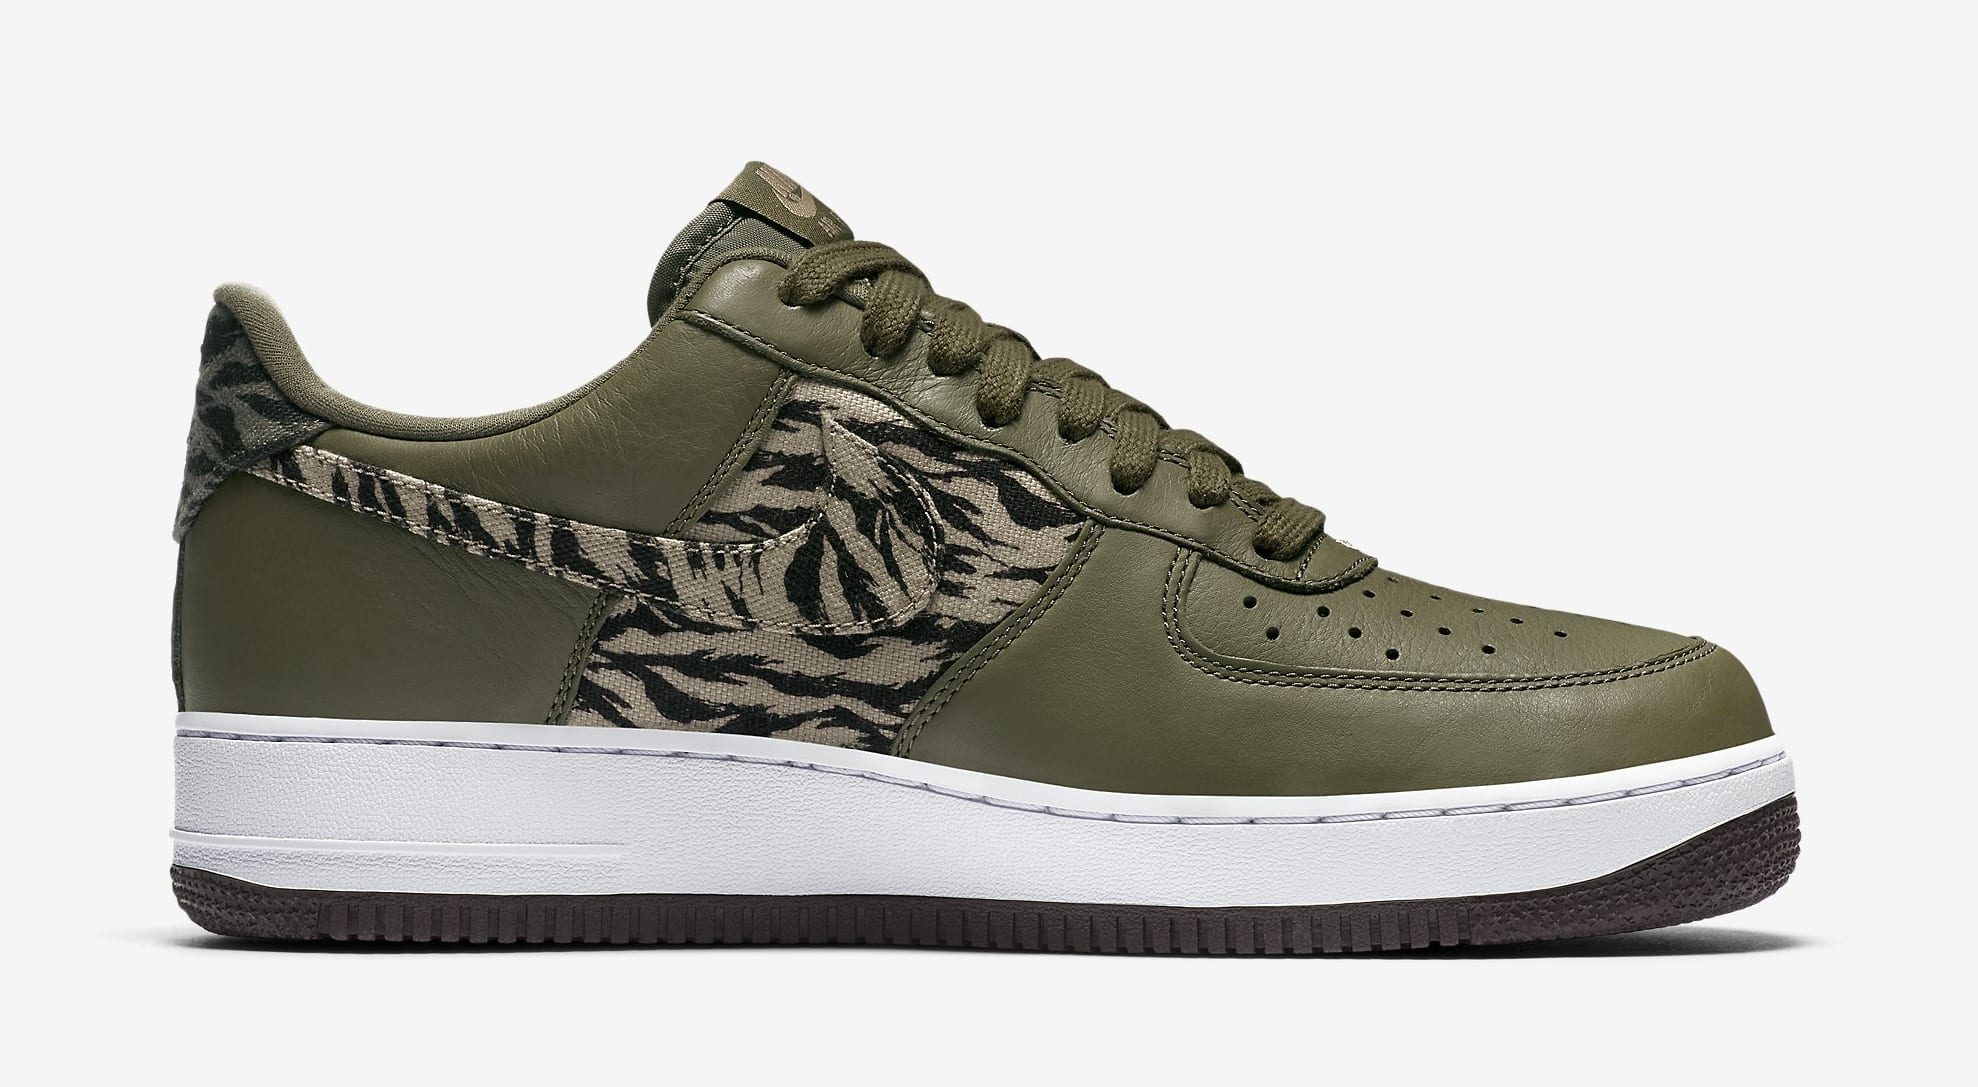 Nike Air Force 1 Low AQ4131-200 (Medial)